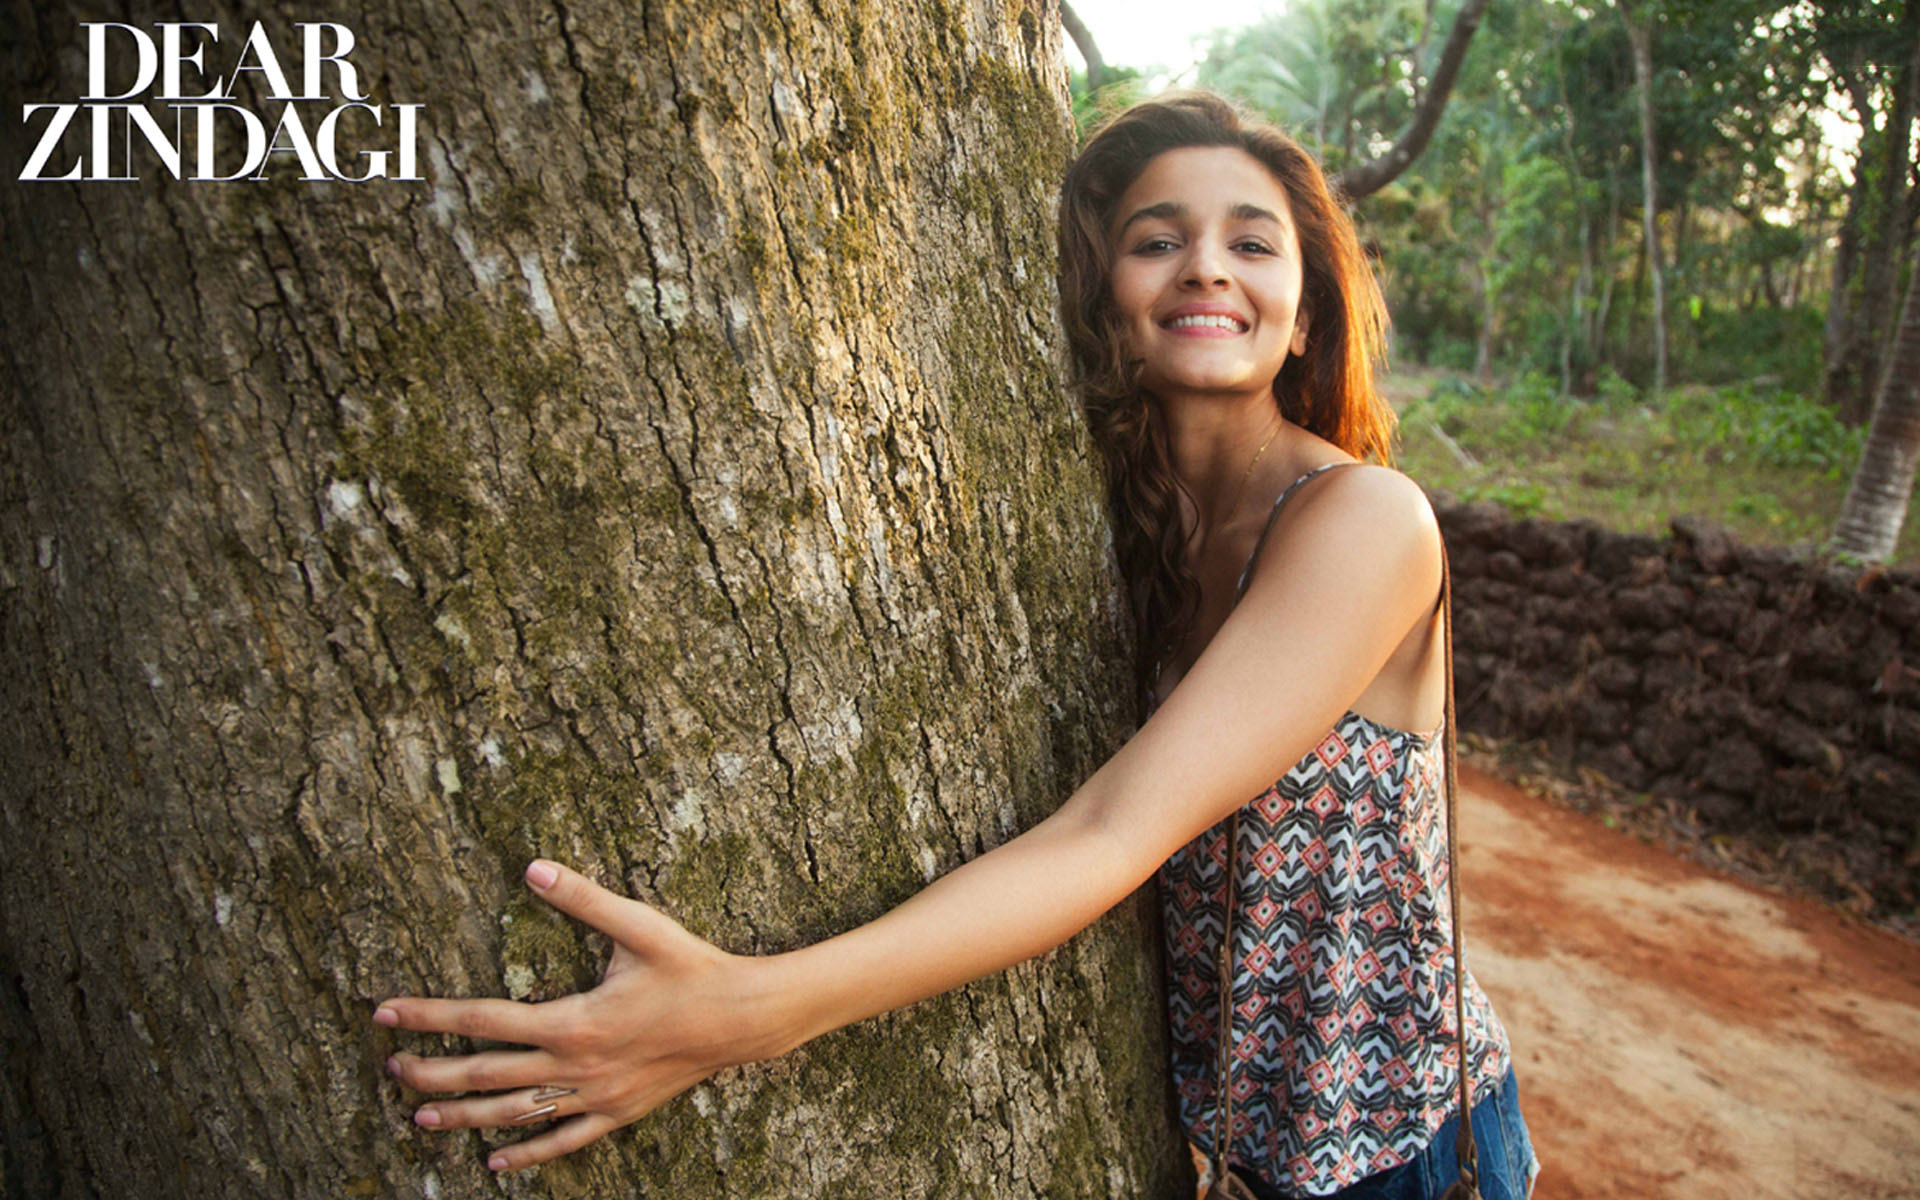 Dear Zindagi Movie Still